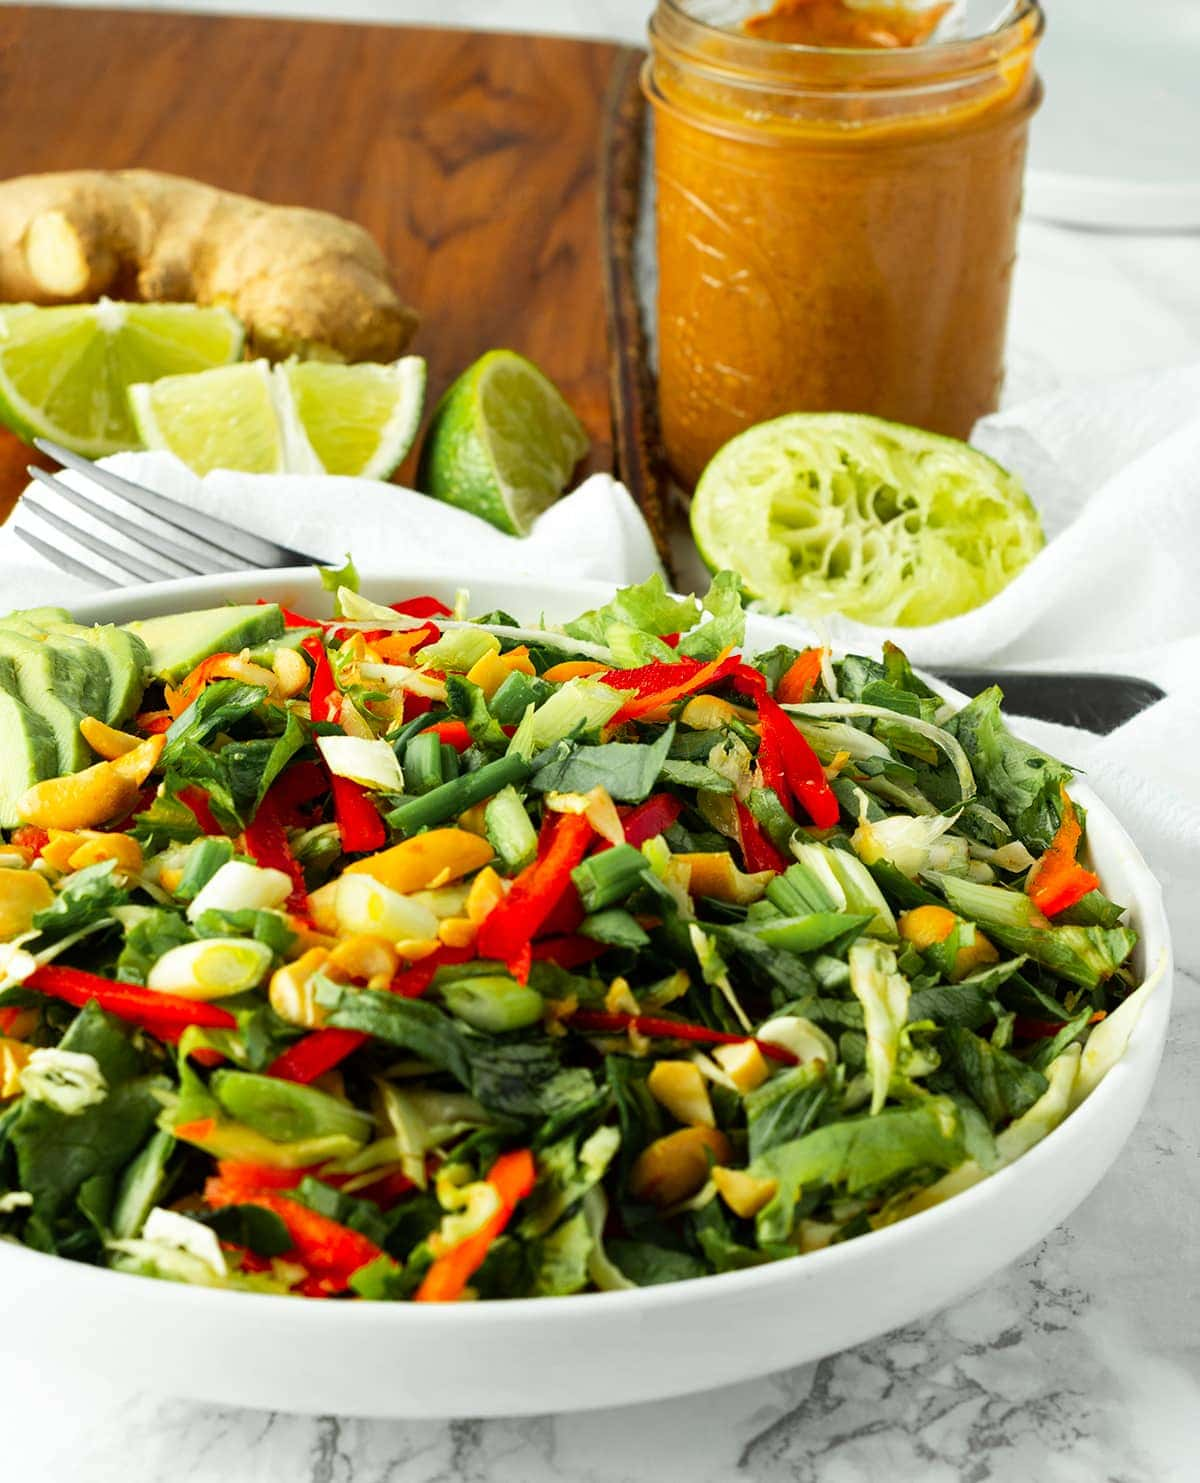 Thai Kale Salad With Creamy Peanut Sauce